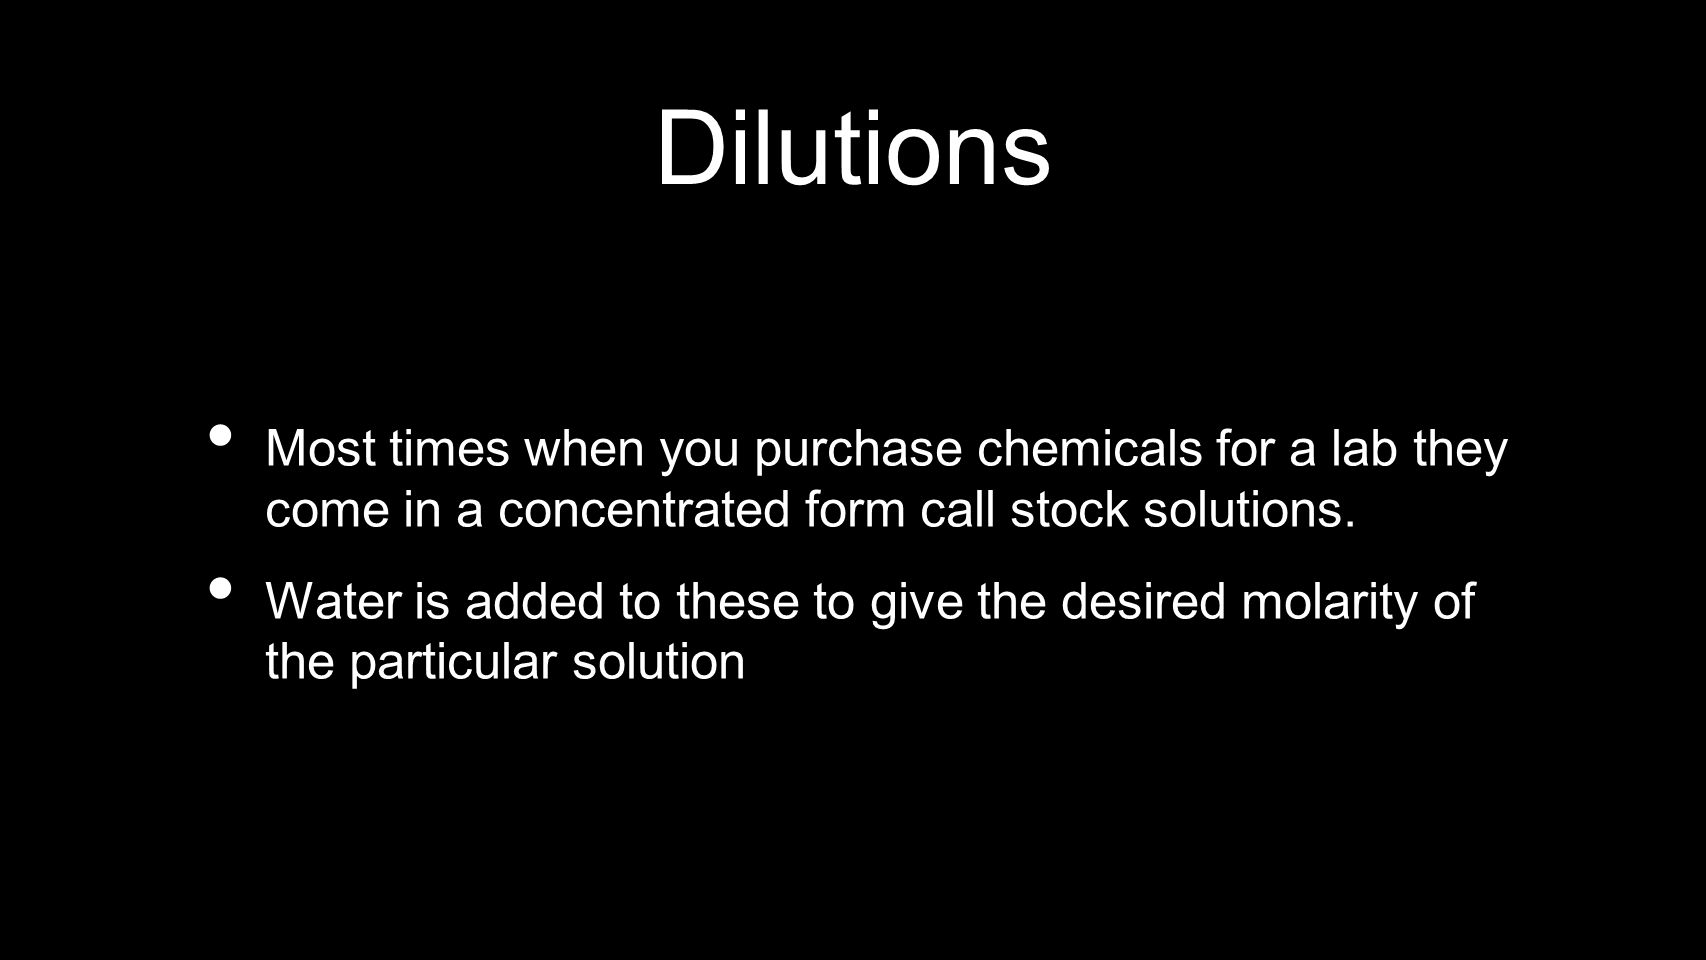 Dilutions Most times when you purchase chemicals for a lab they come in a concentrated form call stock solutions.